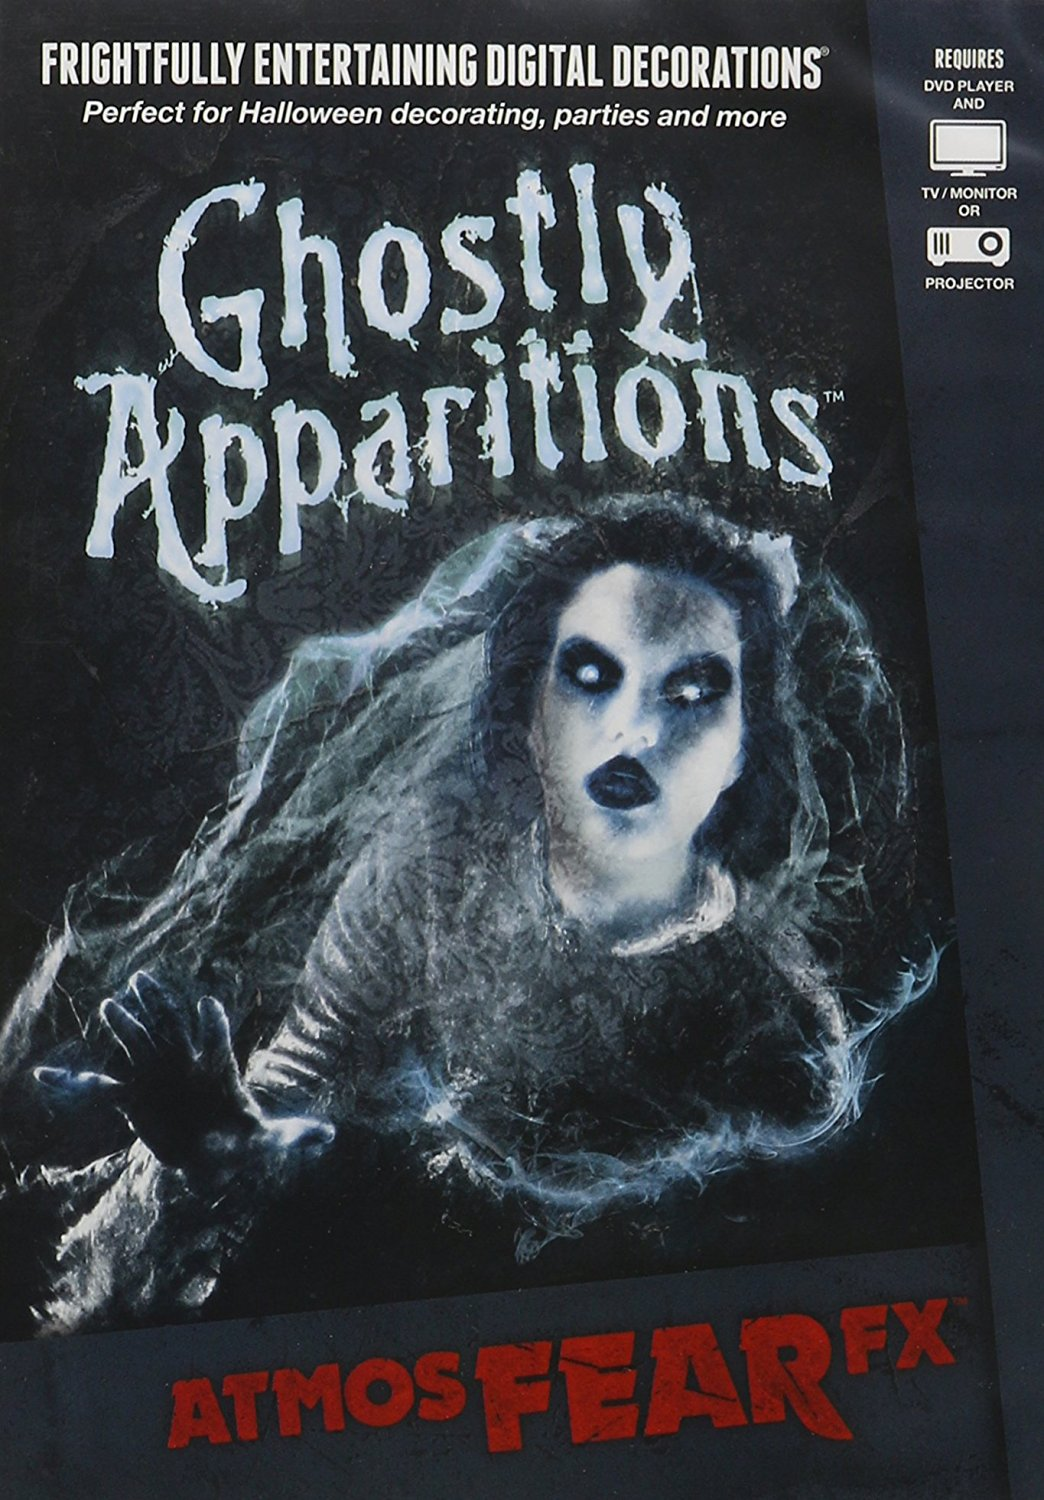 AtmosFX Ghostly Apparitions Digital Decorations DVD for Halloween Holiday Projection Decorating  – Available in DVD, SD Card and Digital Download Format